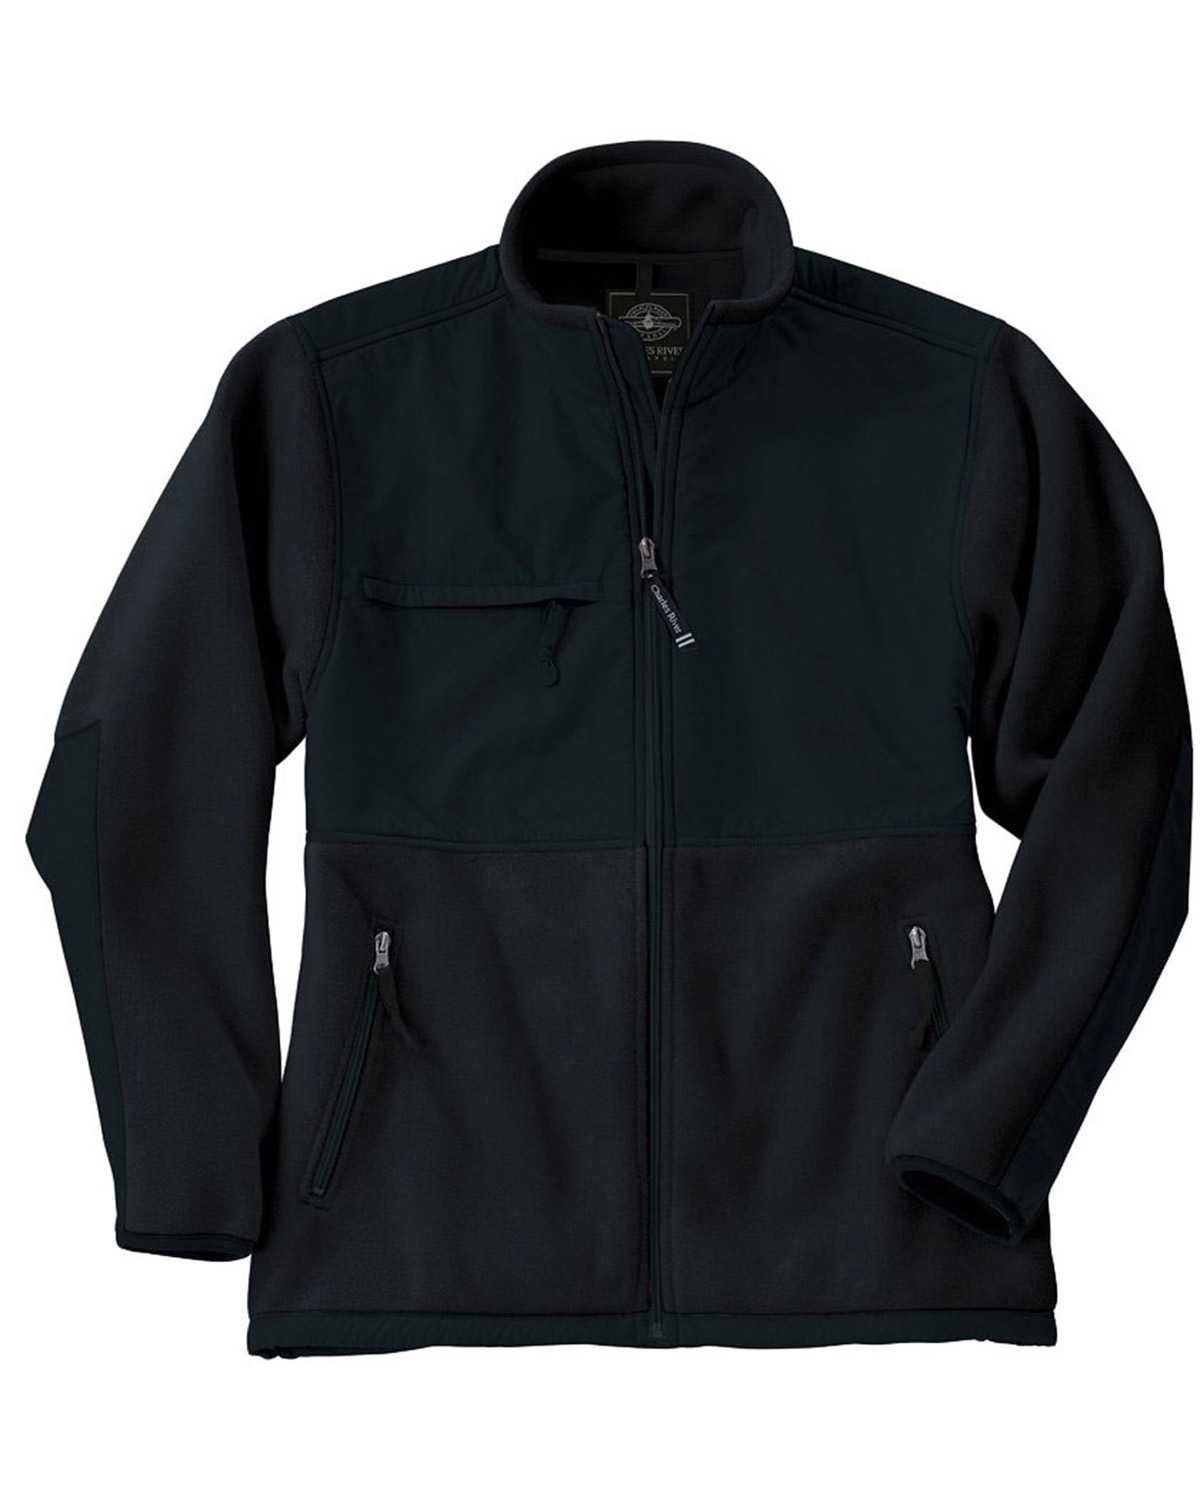 Boys Fleece Jackets, Sport Pullovers, Full Zip Hooded Sweatshirts ...